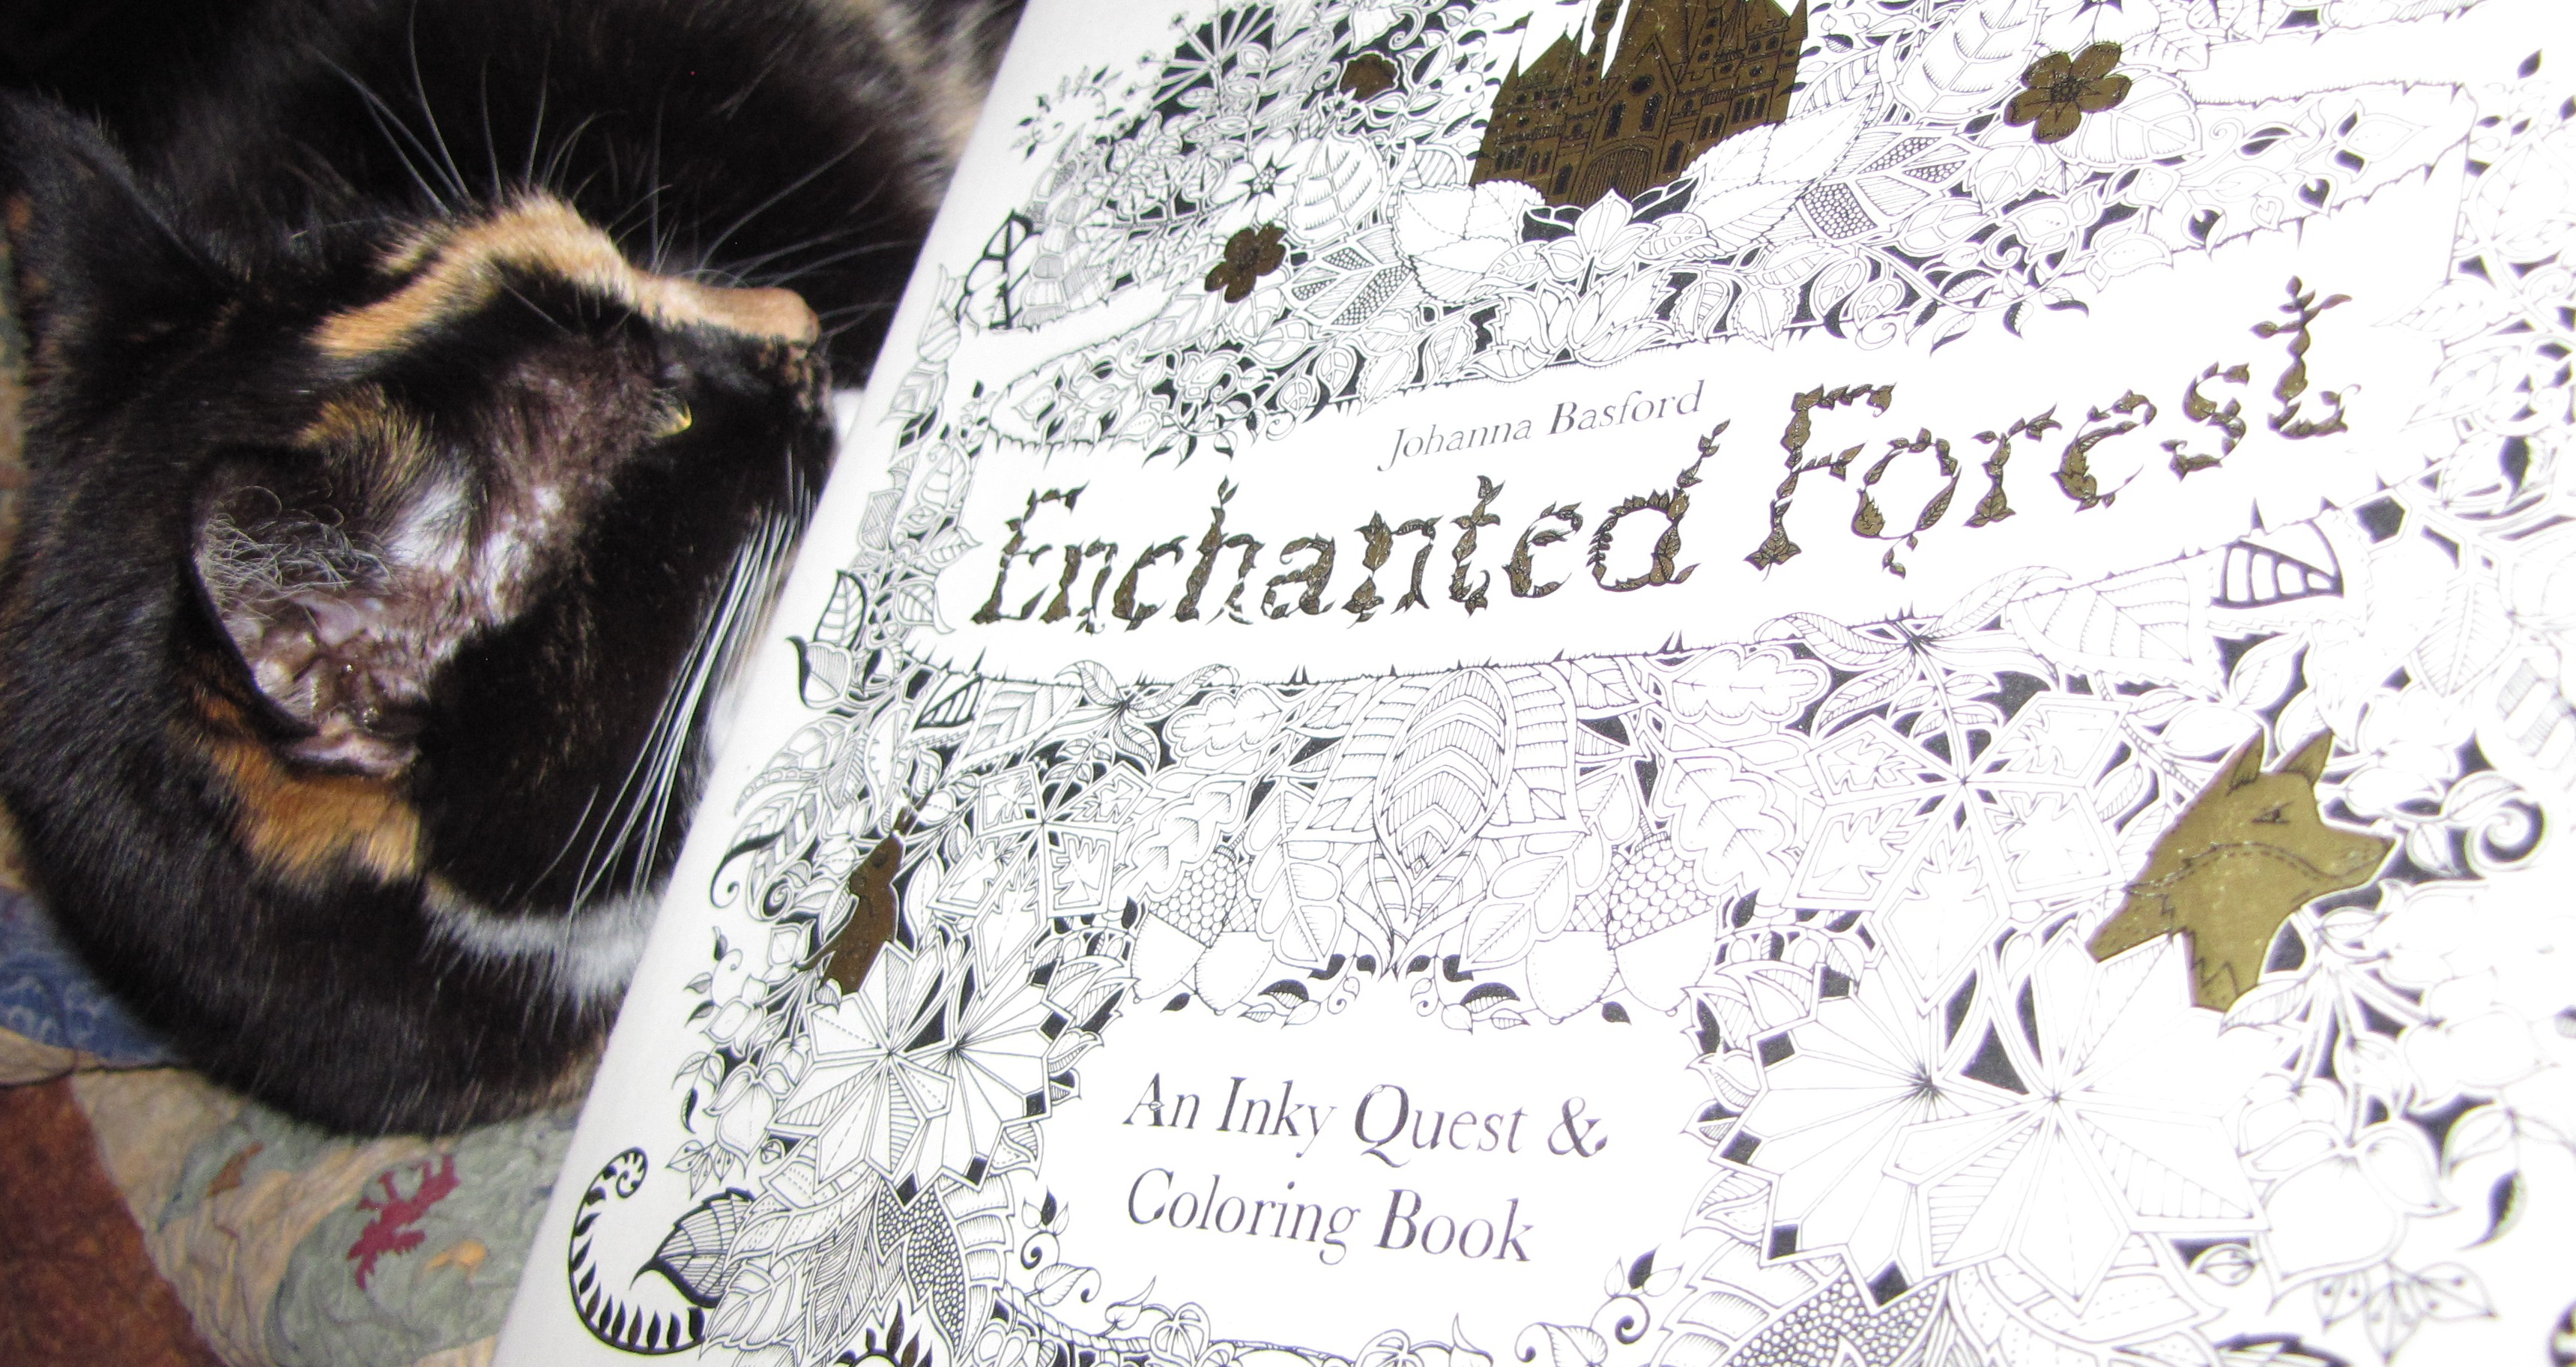 Enchanted Forest An Inky Quest Coloring Book By Johanna Basford Good Cat What Else Does One Need